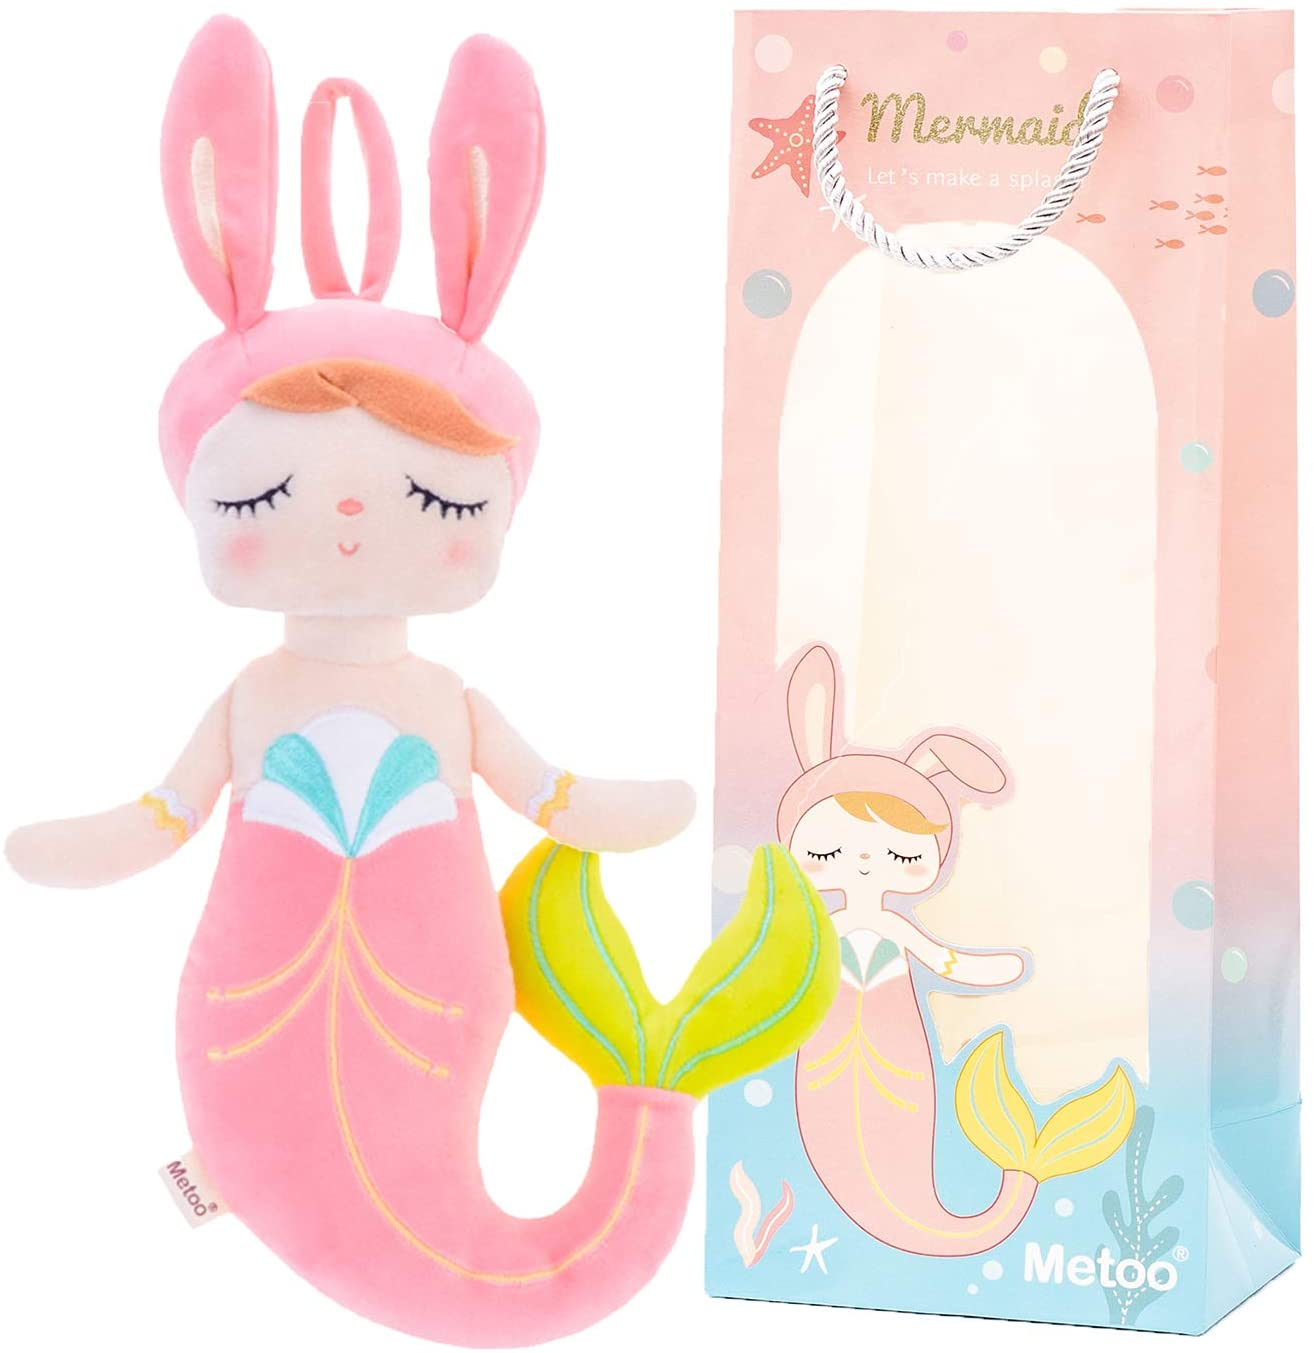 Plush Mermaid Baby Bunny Doll Girl Gifts Soft First Dolls with Gift Box Pink 14 Inches